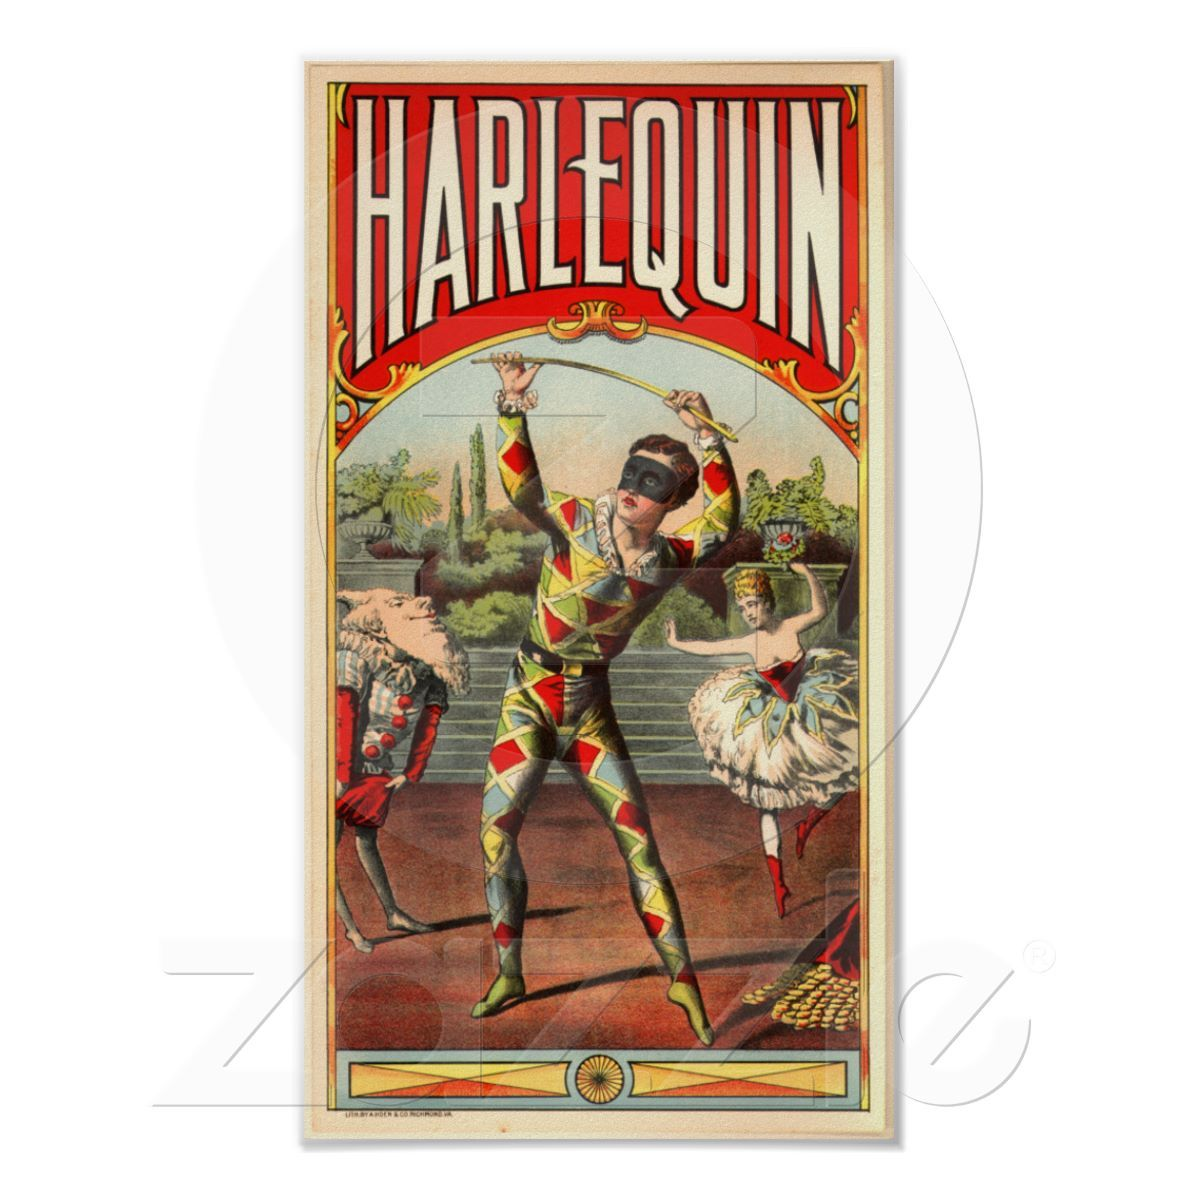 Harlequin Poster Zazzle Com Graphic Design Collection Vintage Posters Circus Poster